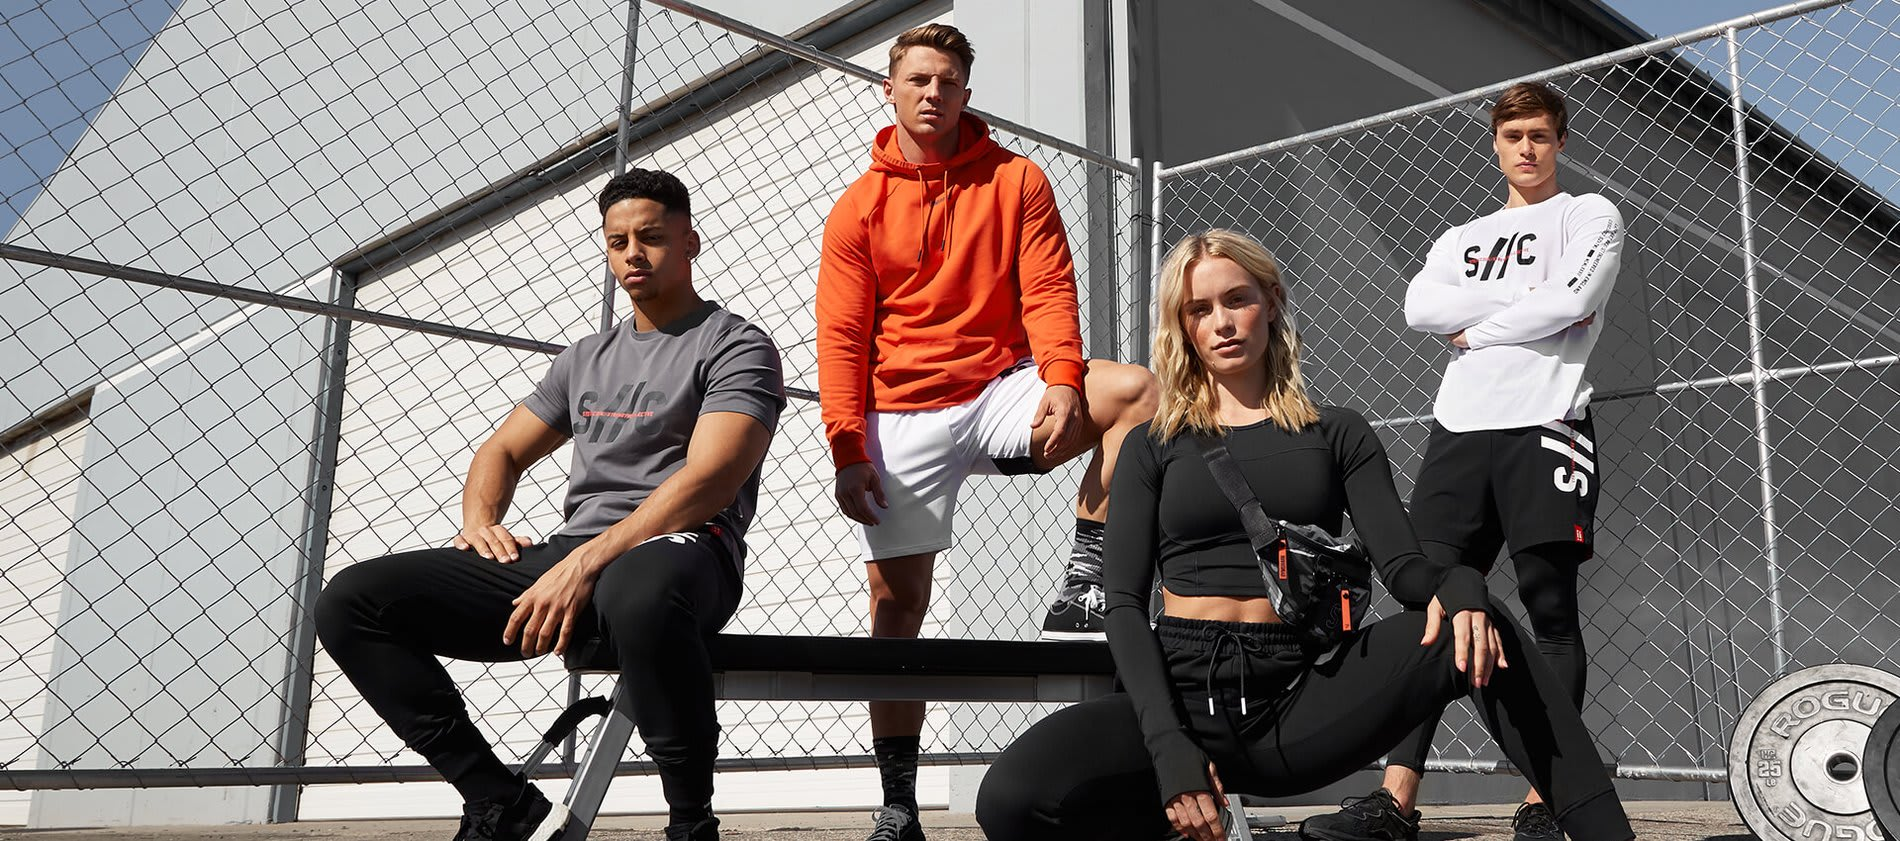 4 Gymshark athletes including Steve Cook posing together in front of a wire fence wearing the Steve Cook Collection.